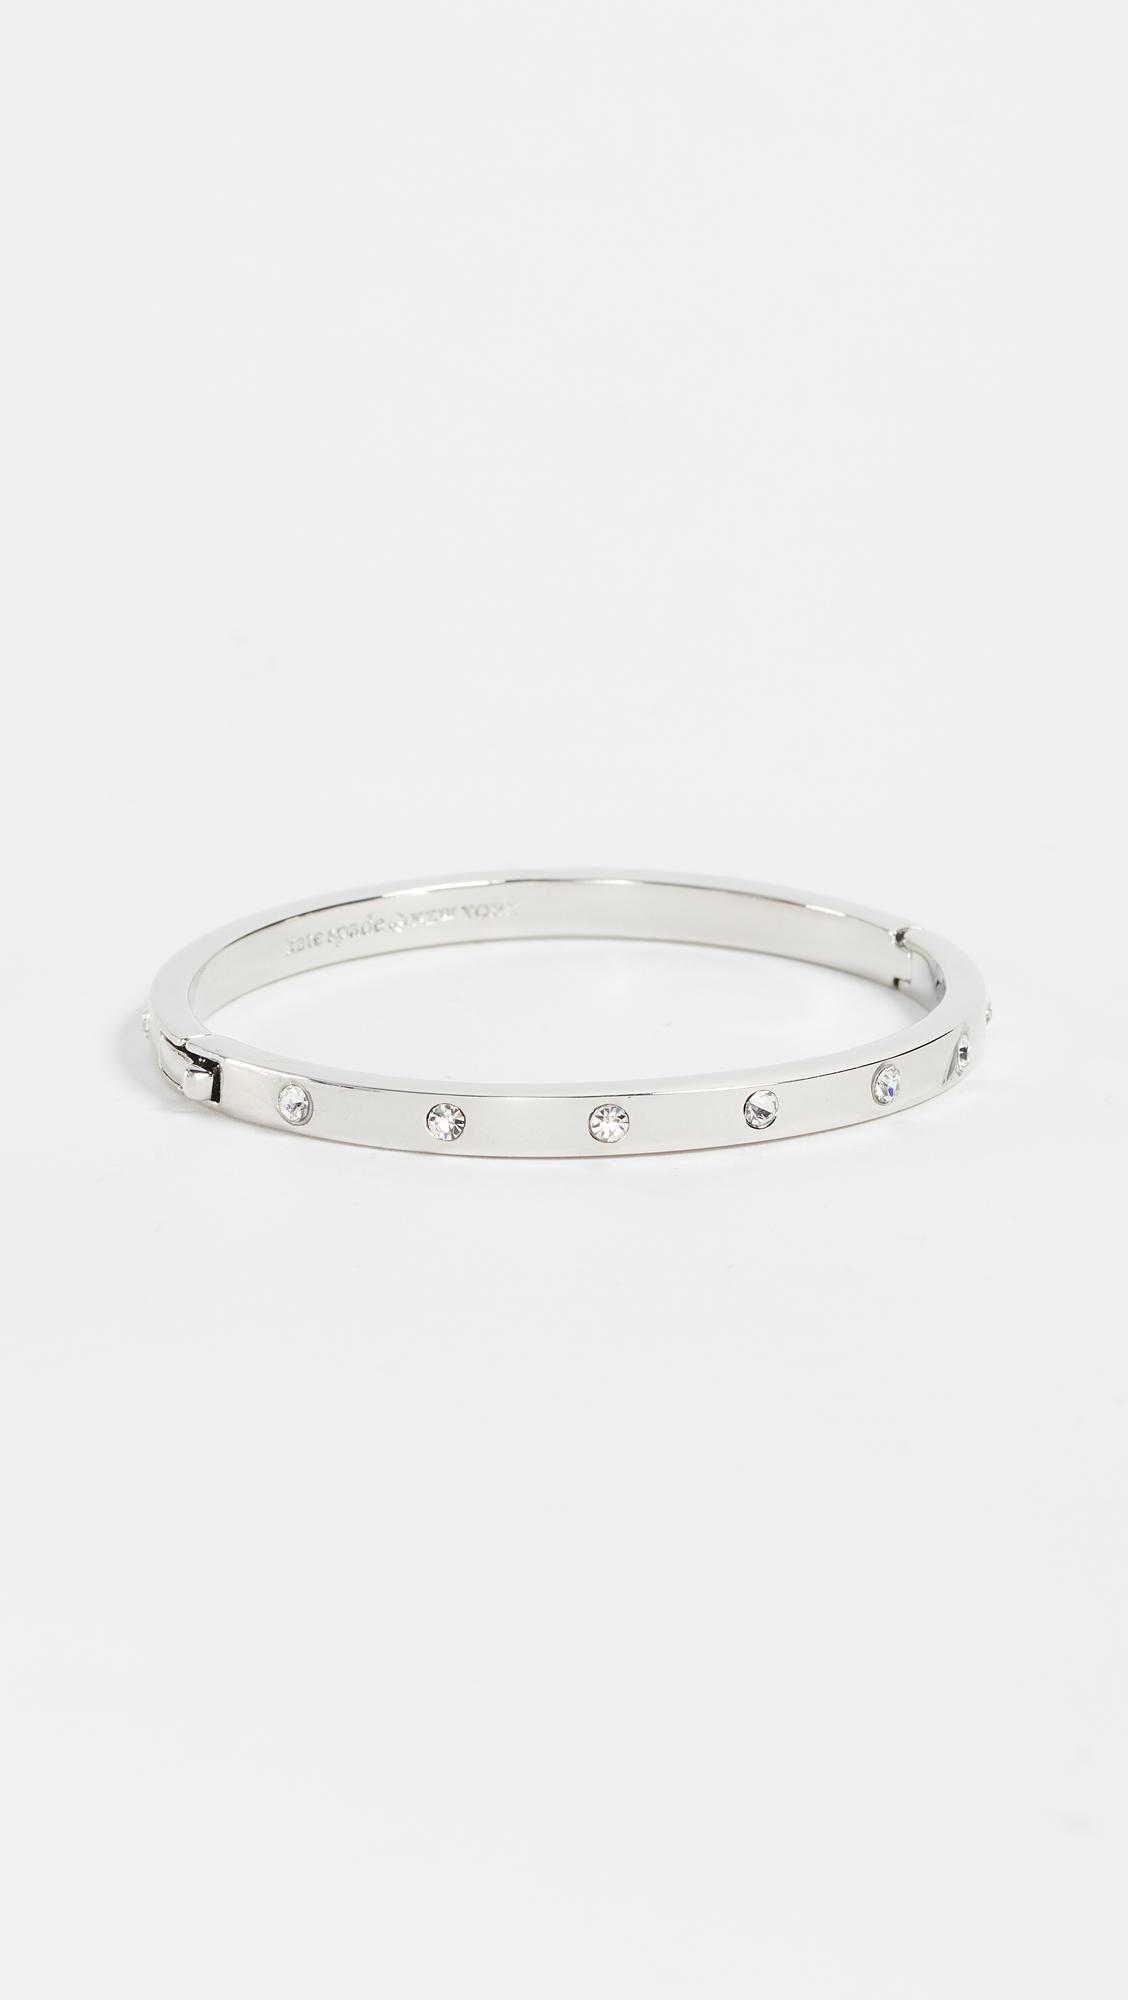 Kate Spade Set In Stone Hinged Bangle In Metallic Lyst